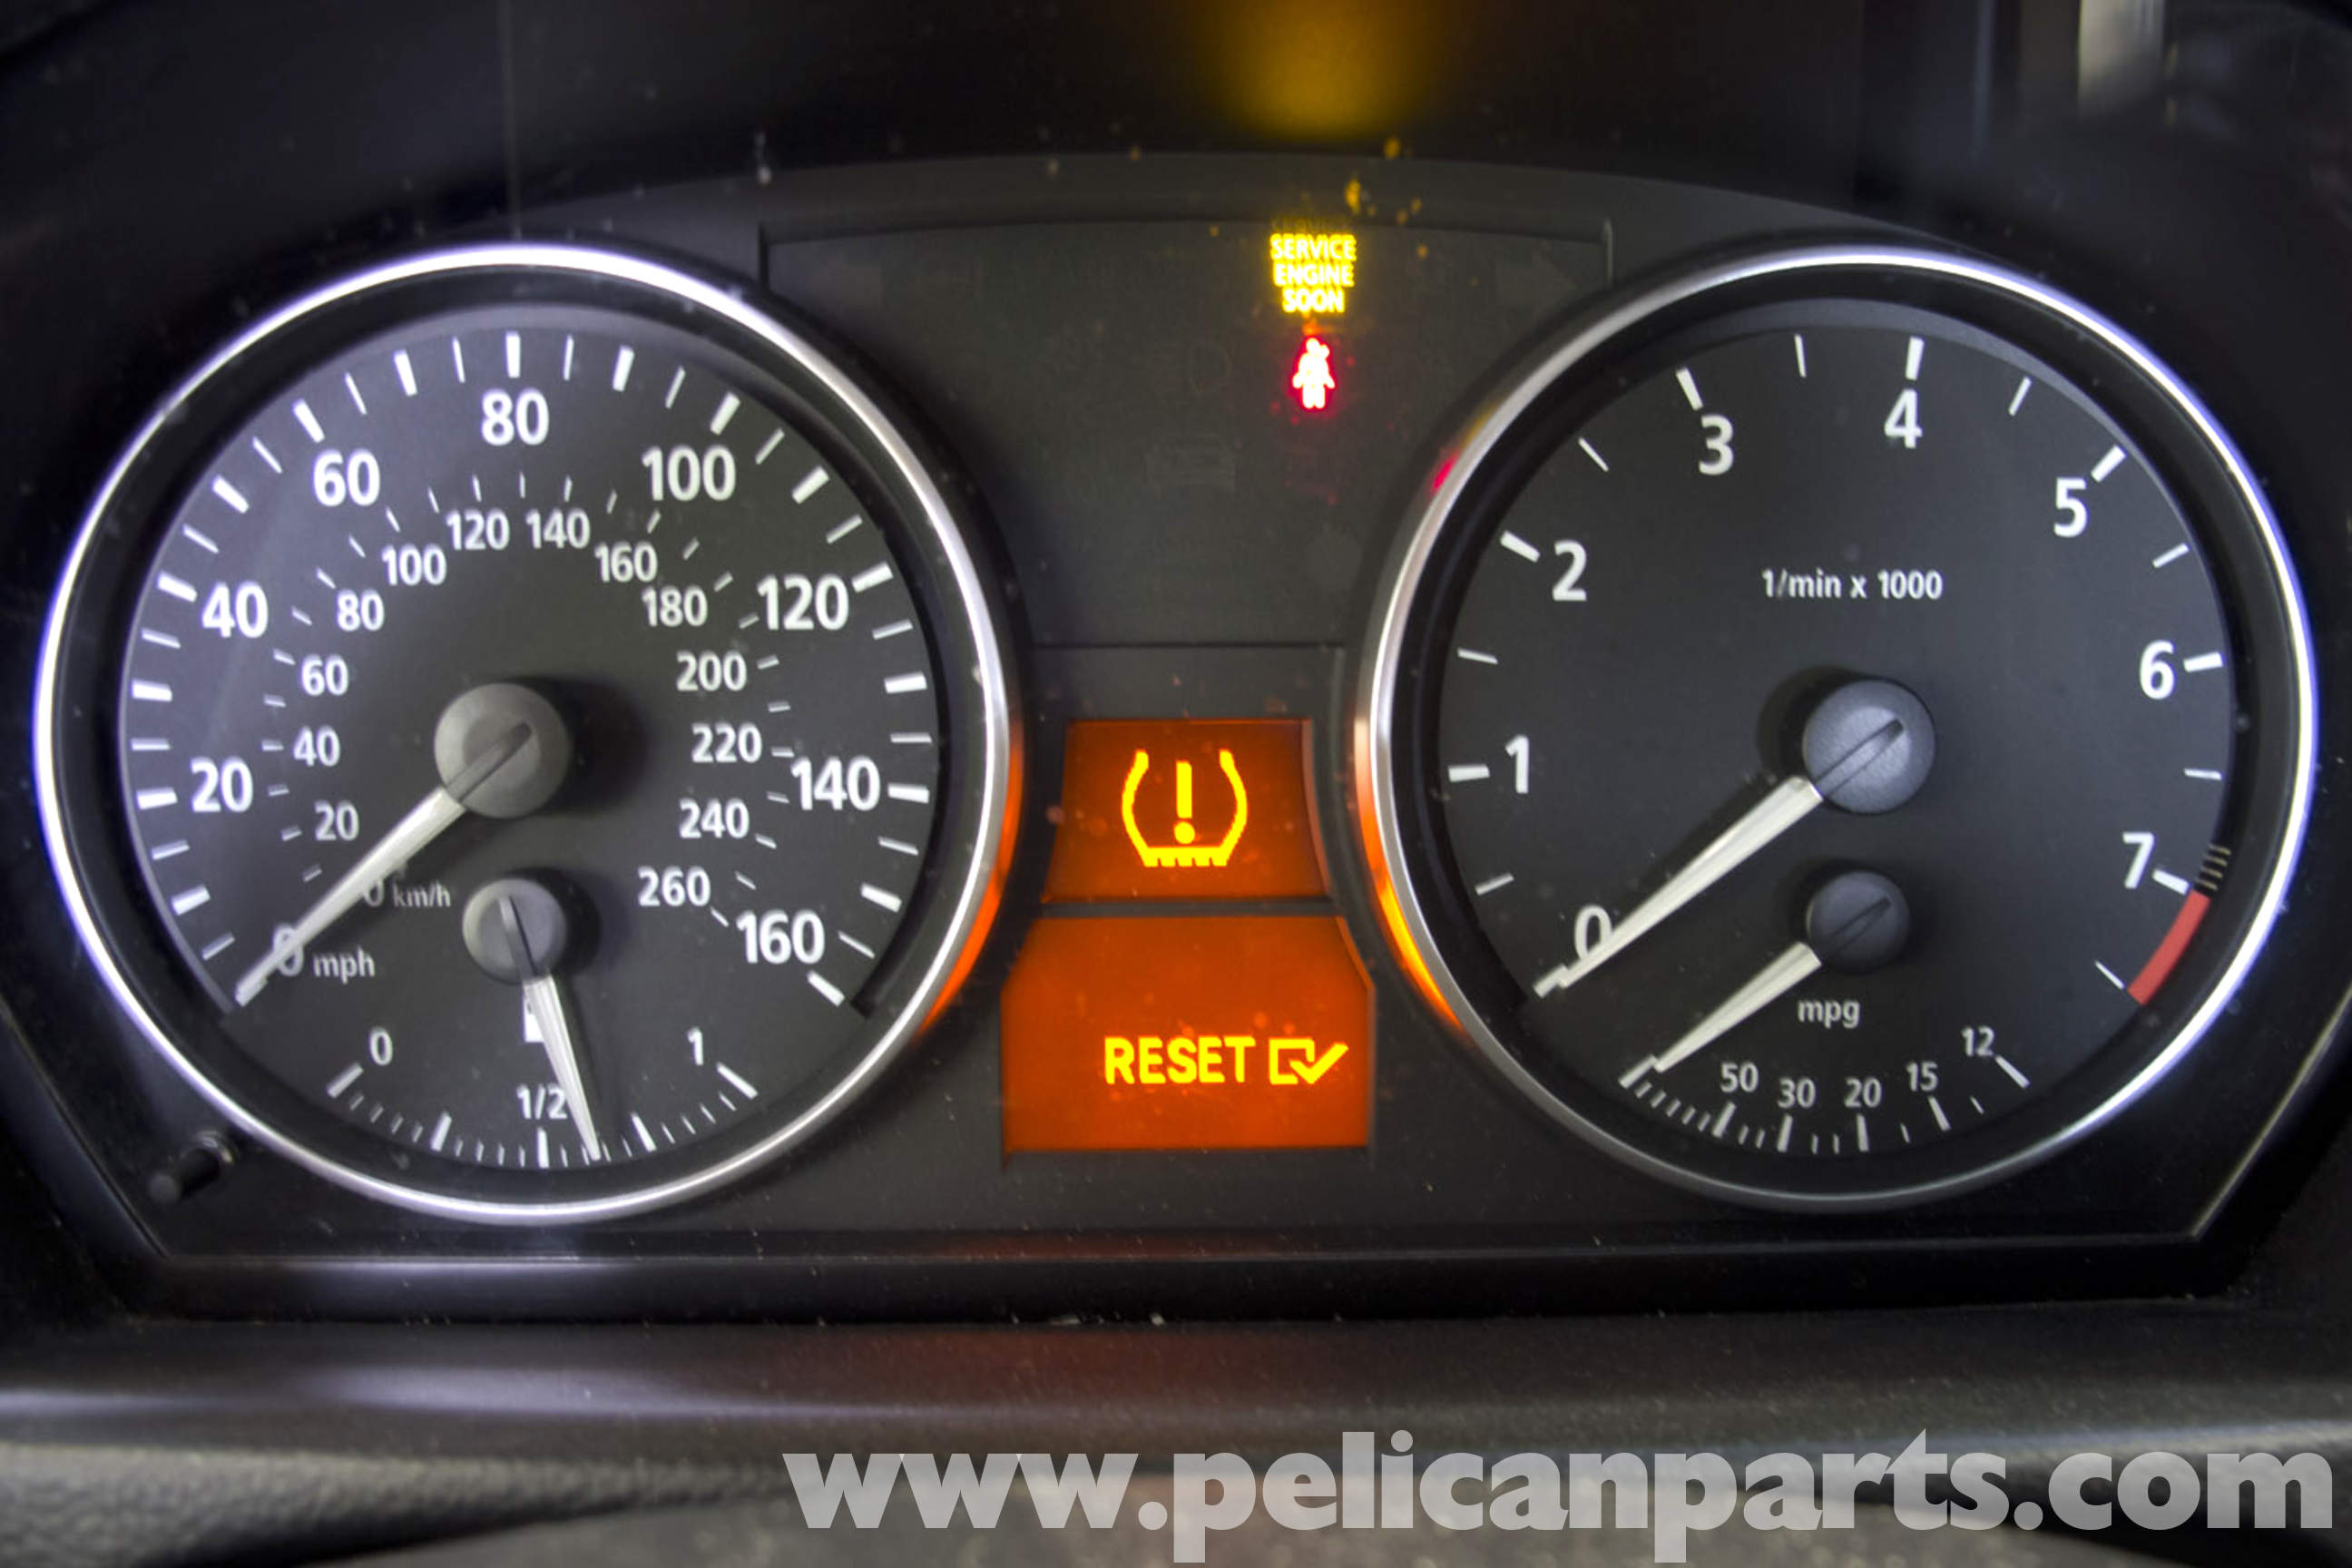 Bmw E90 Tire Pressure Warning Light Reset E91 E92 E93 Pelican Parts Diy Maintenance Article